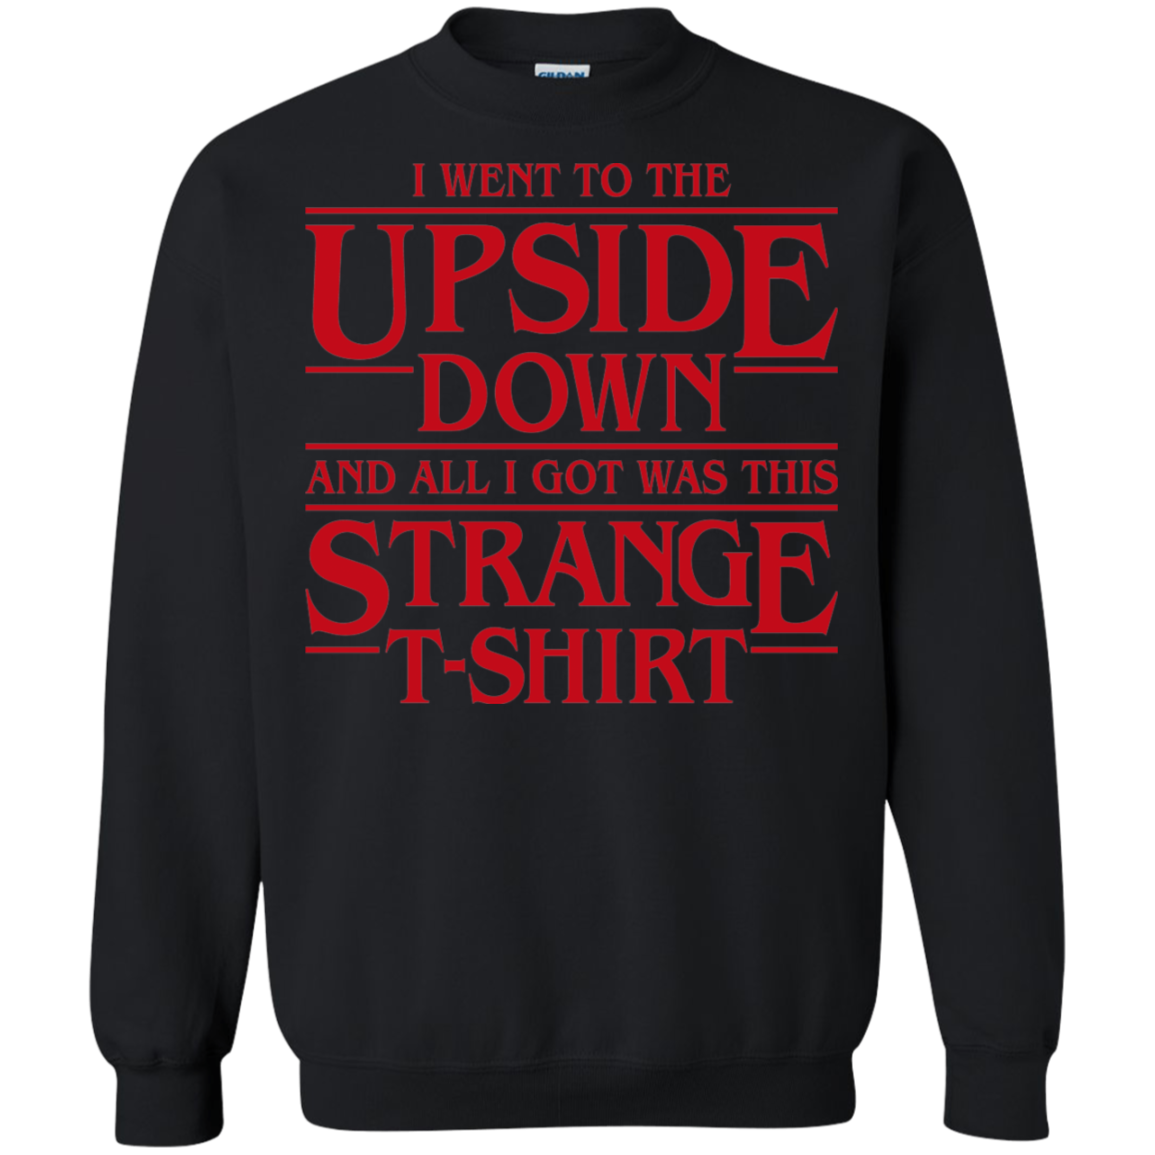 I Went to the Upside Down Crewneck Sweatshirt